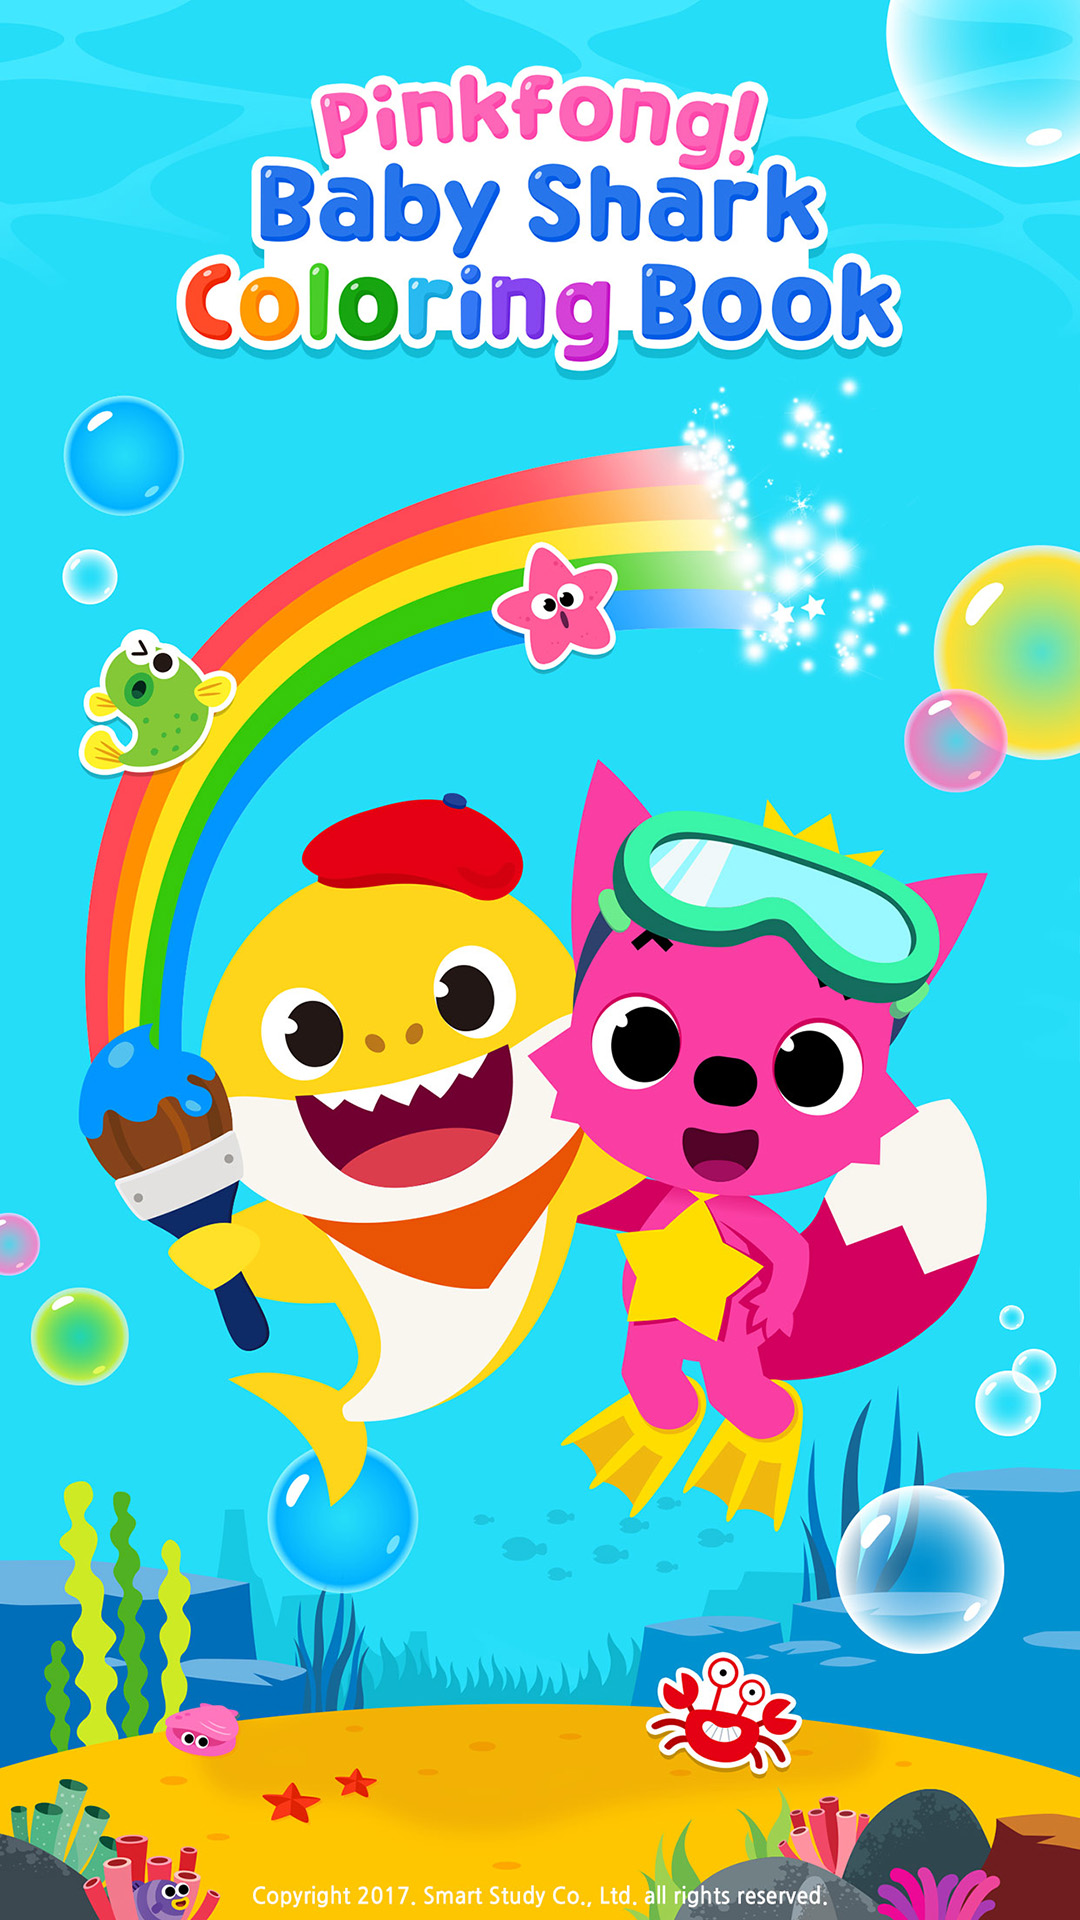 Pinkfong Baby Shark Coloring Book Amazon De Apps F 252 R Android